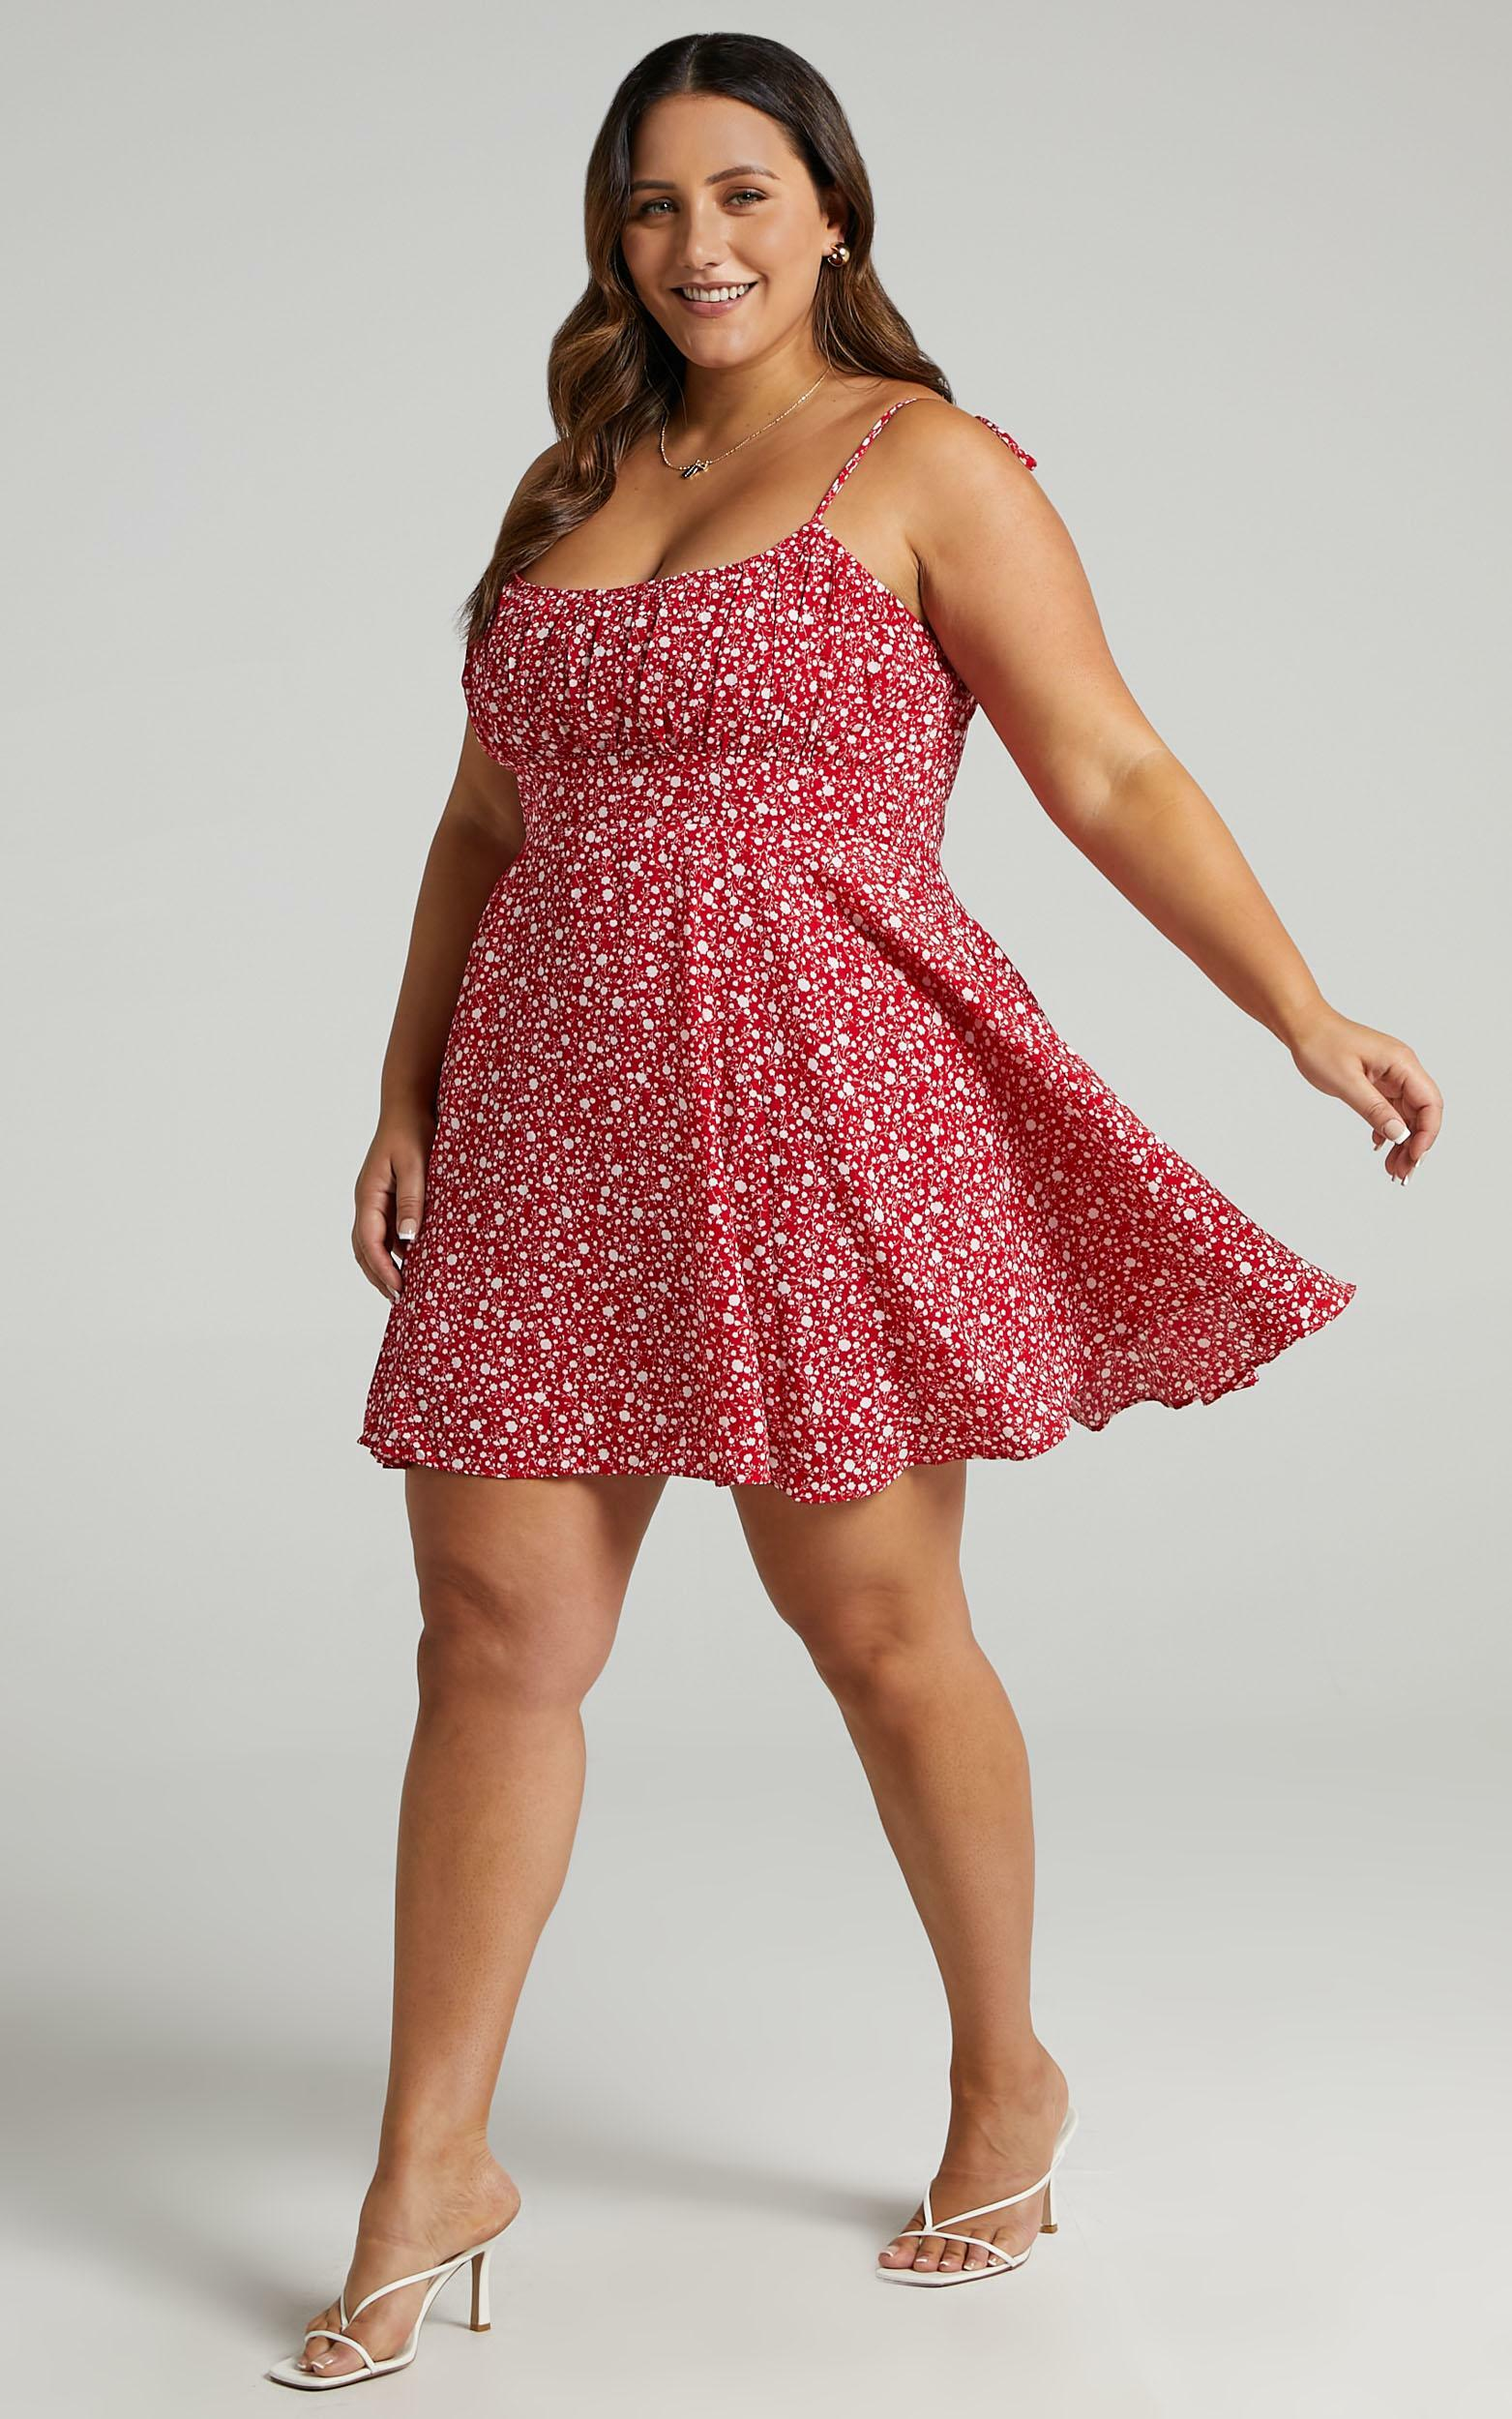 Summer Jam Sweetheart Mini Dress in Red Floral Print - 04, RED5, hi-res image number null